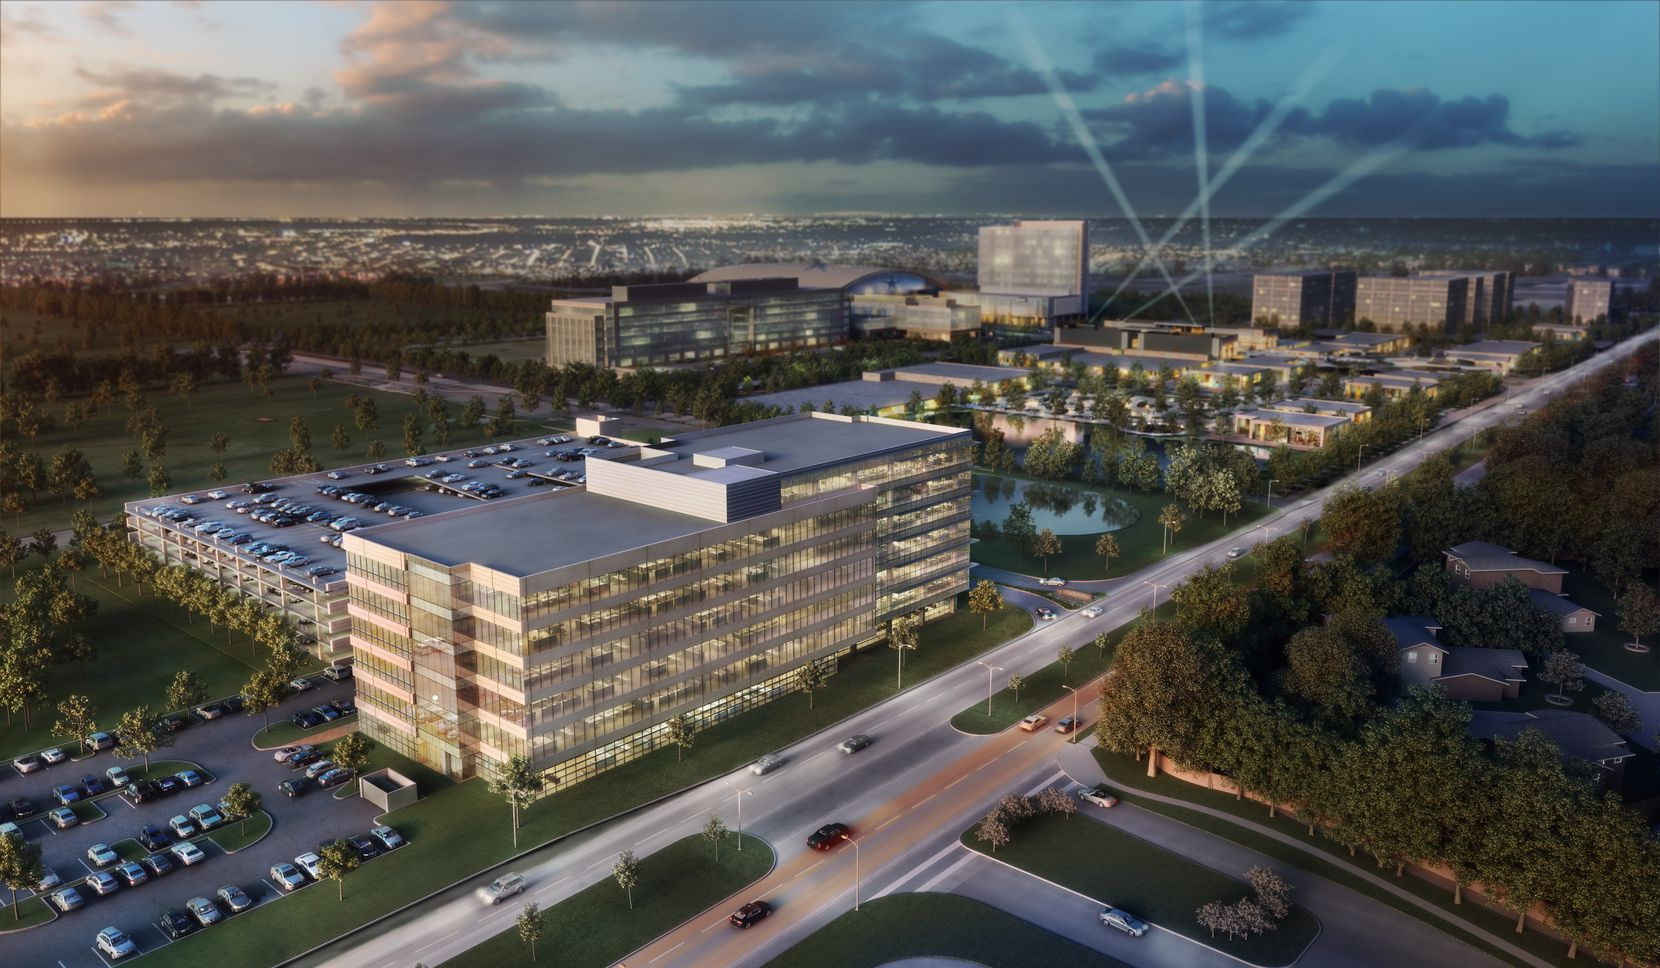 The first Frisco Station office building will be next door to the Dallas Cowboys' new headquarters and practice facility on Warren Parkway west of the Dallas North Tollway. (HKS)